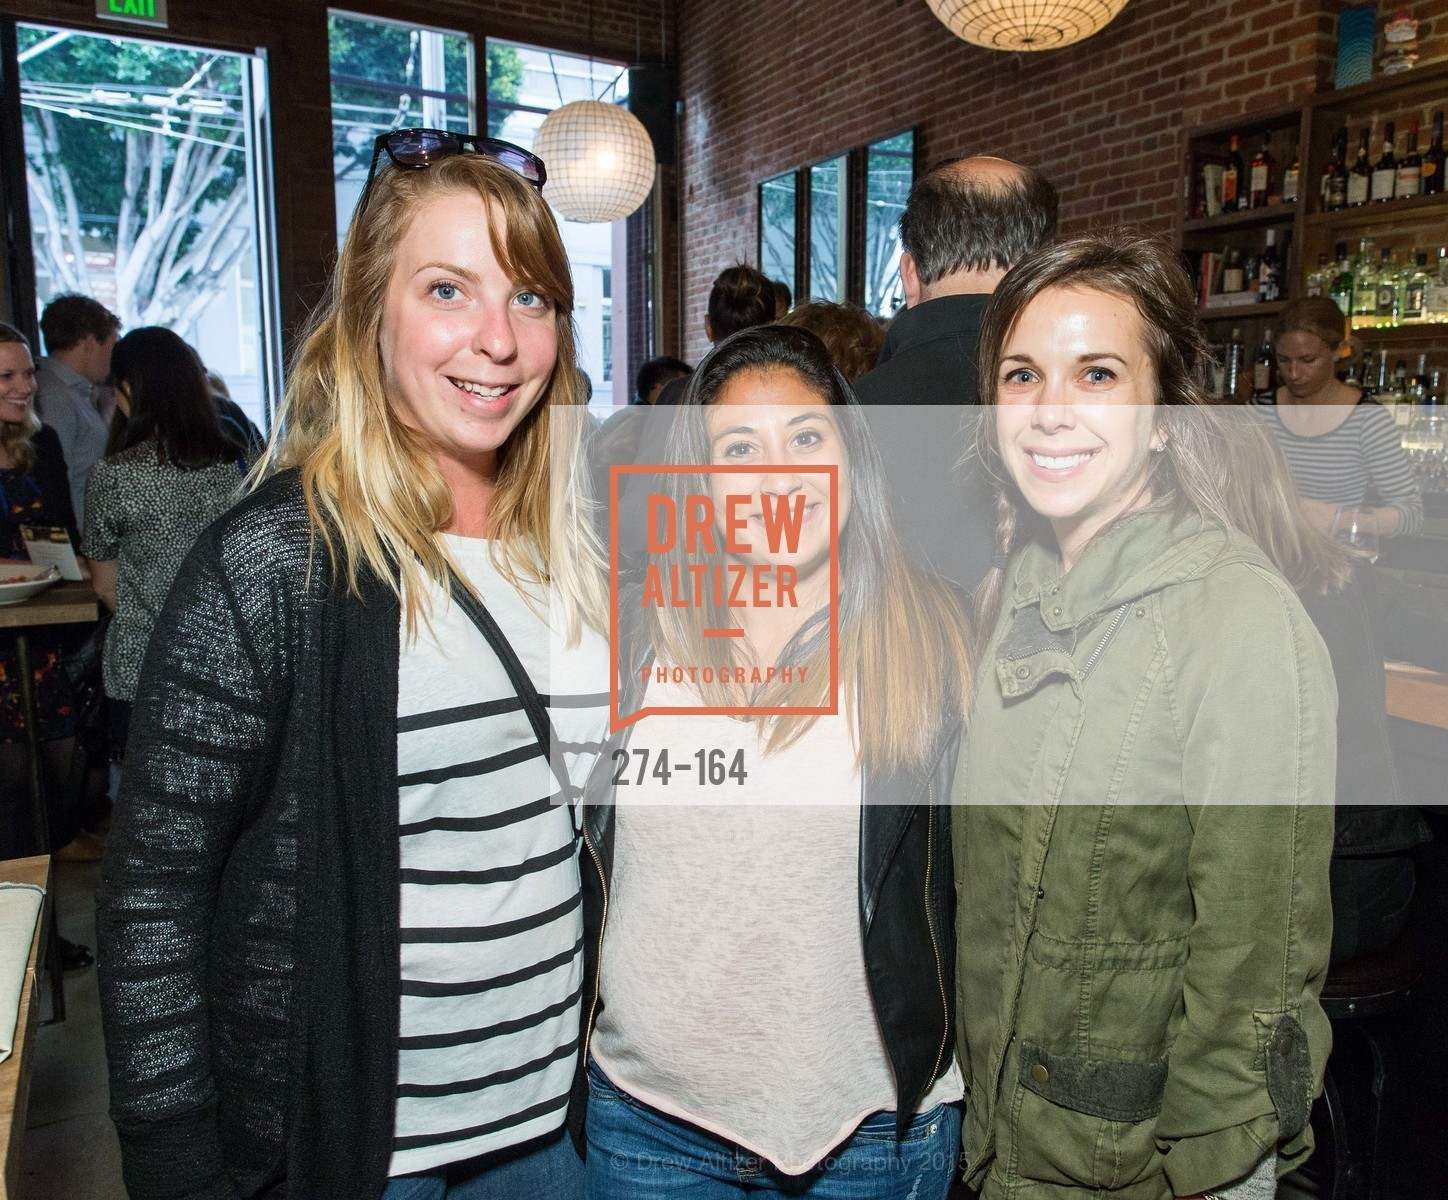 Jen Kraus, Alicia Carrillo, Jessica Cizek, Forgery Bar Opening Celebration, Forgery Bar. 152 Mission St, June 14th, 2015,Drew Altizer, Drew Altizer Photography, full-service agency, private events, San Francisco photographer, photographer california